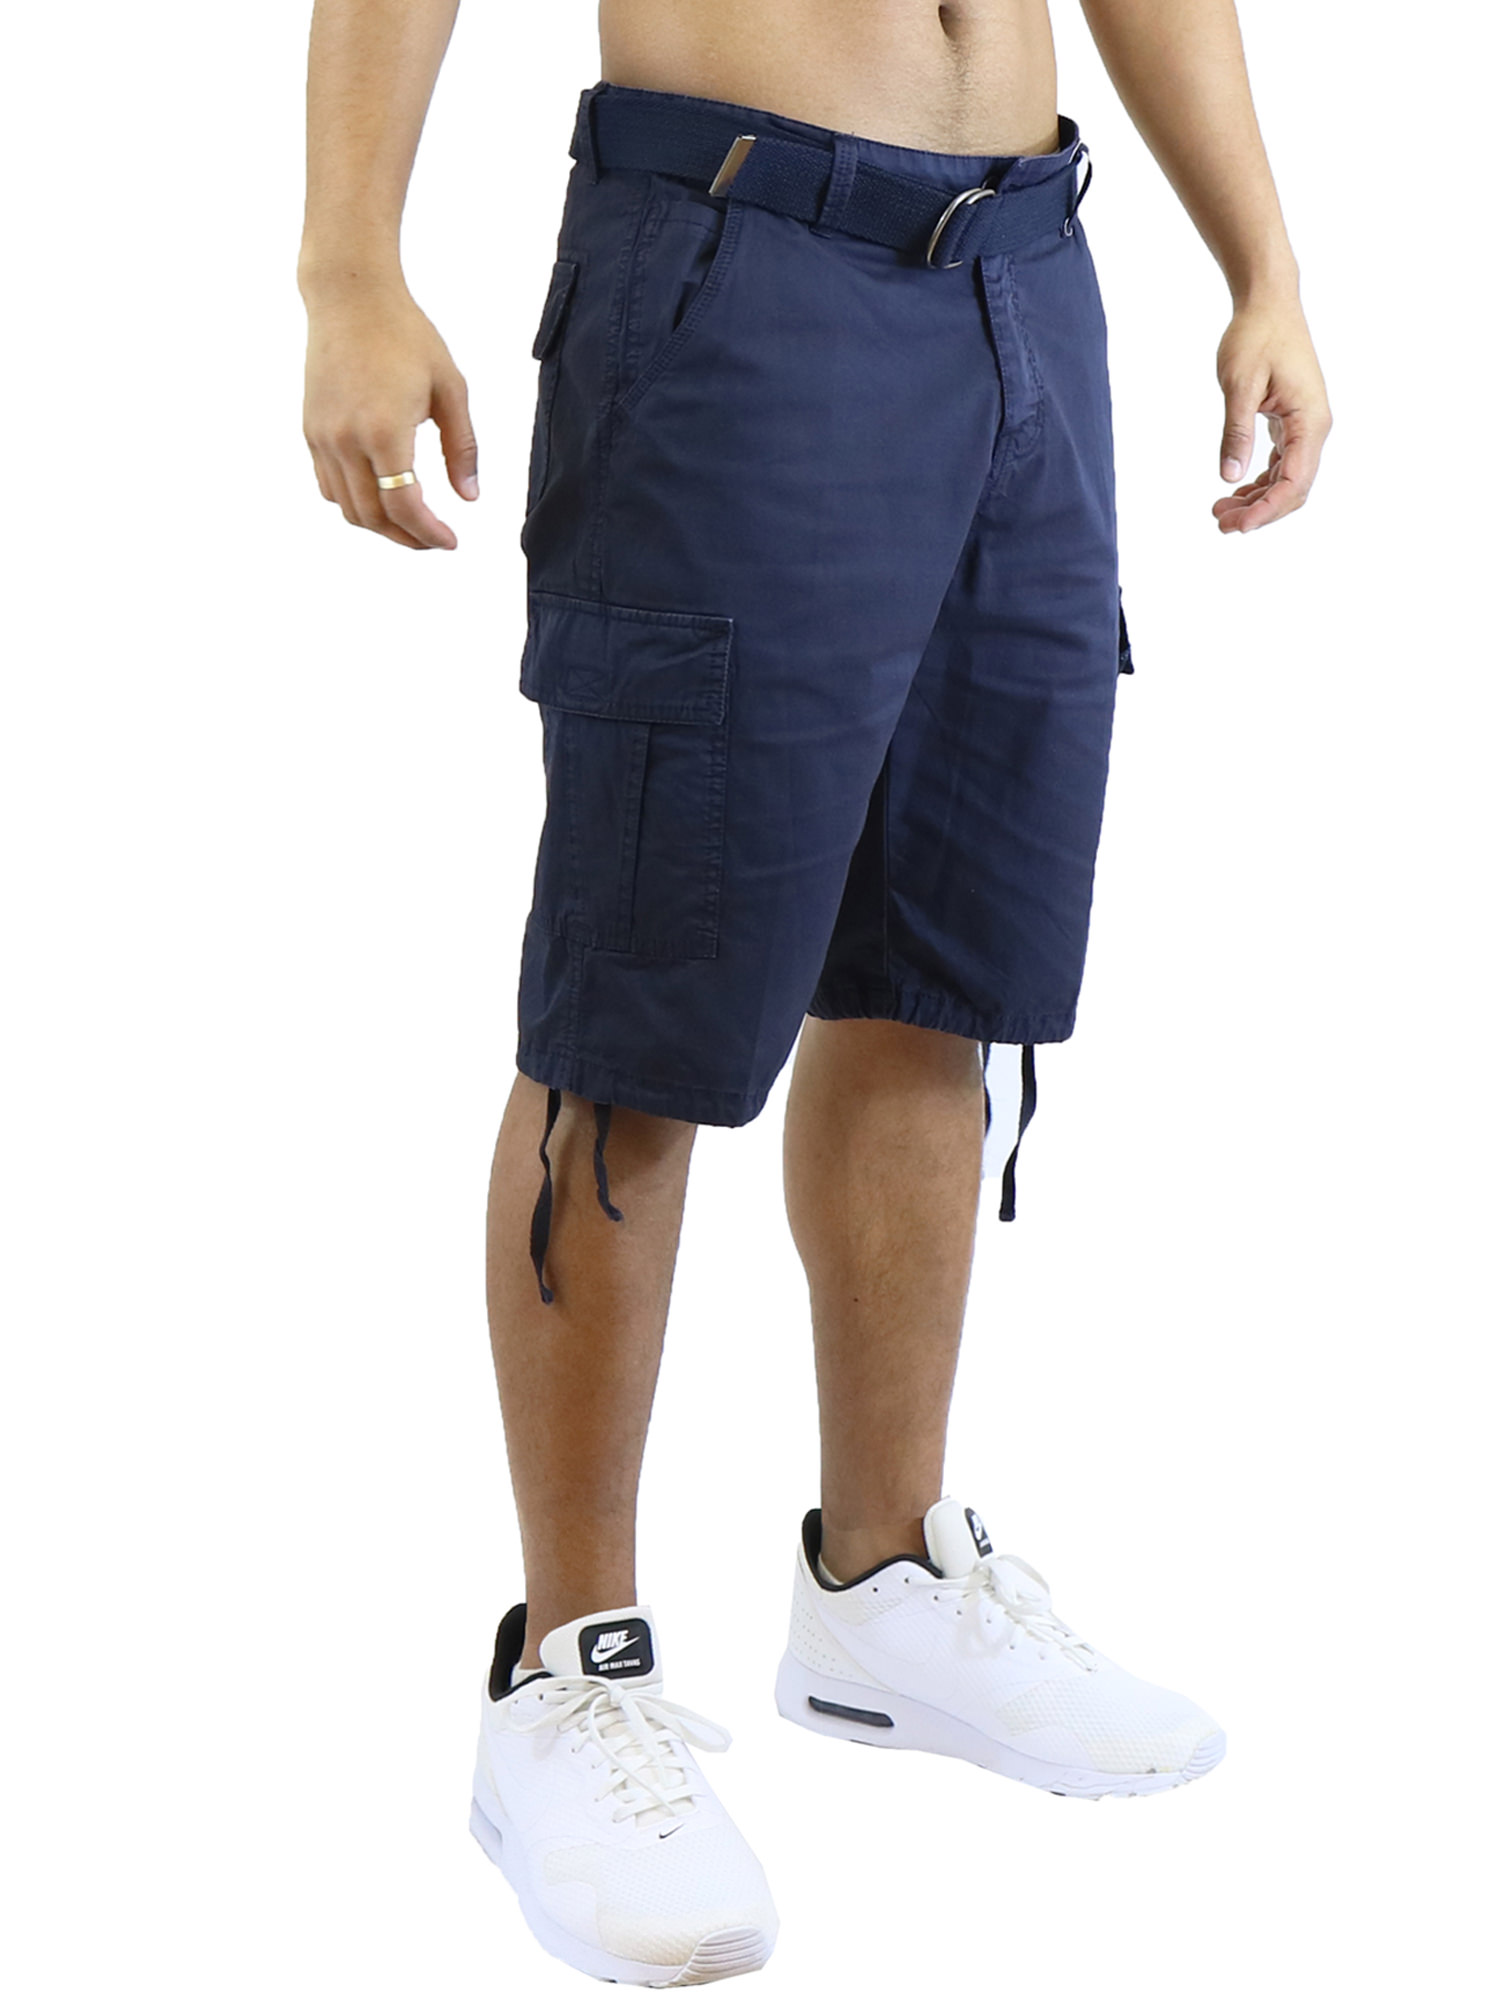 Mens Vintage Utility Cotton Cargo Shorts With Belt